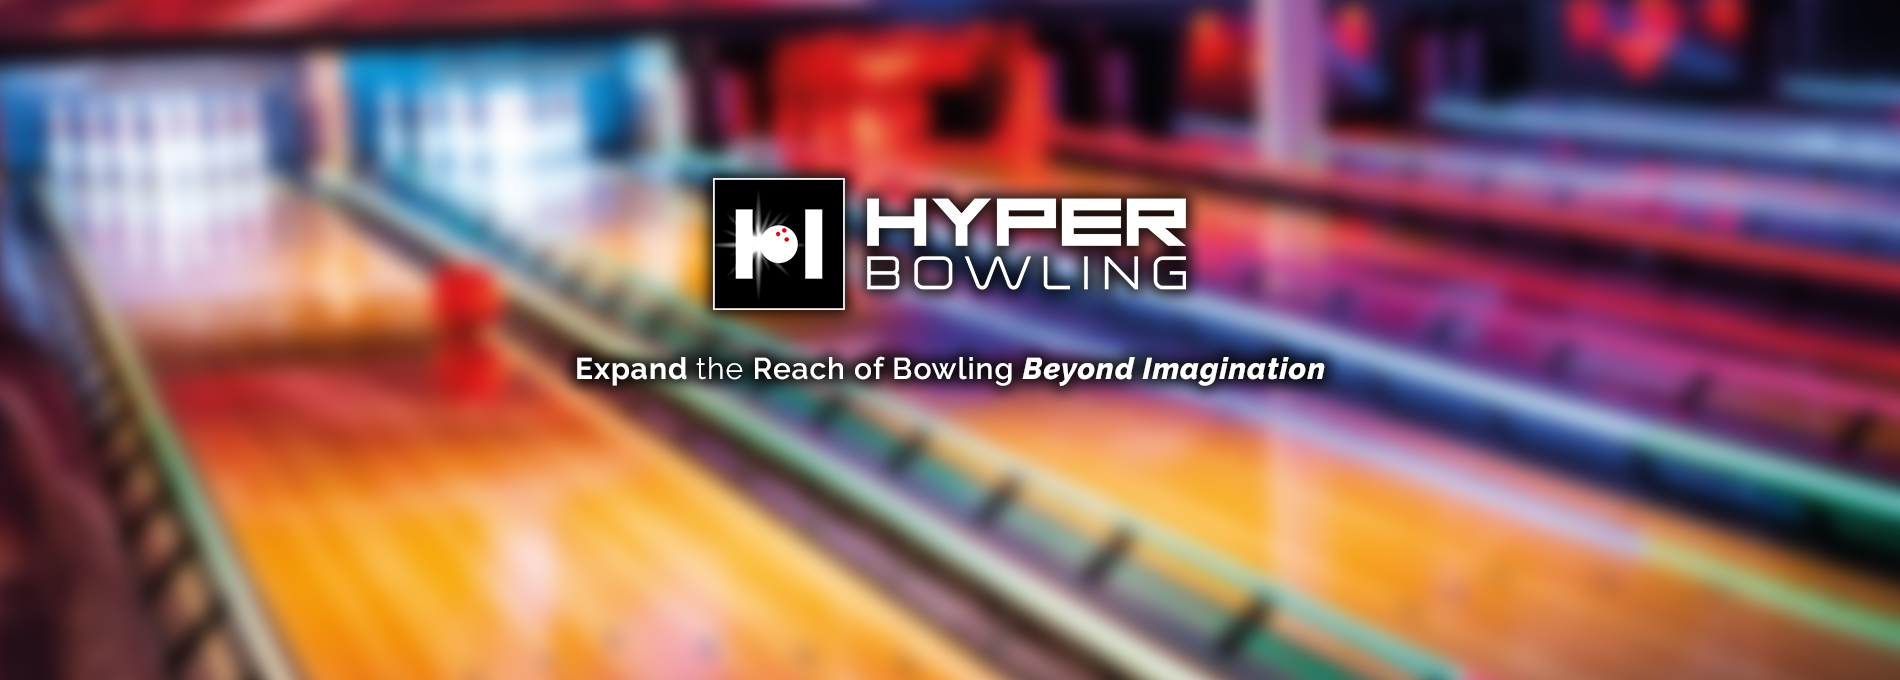 QubicaAMF Bowling HyperBowling 2020 home banner